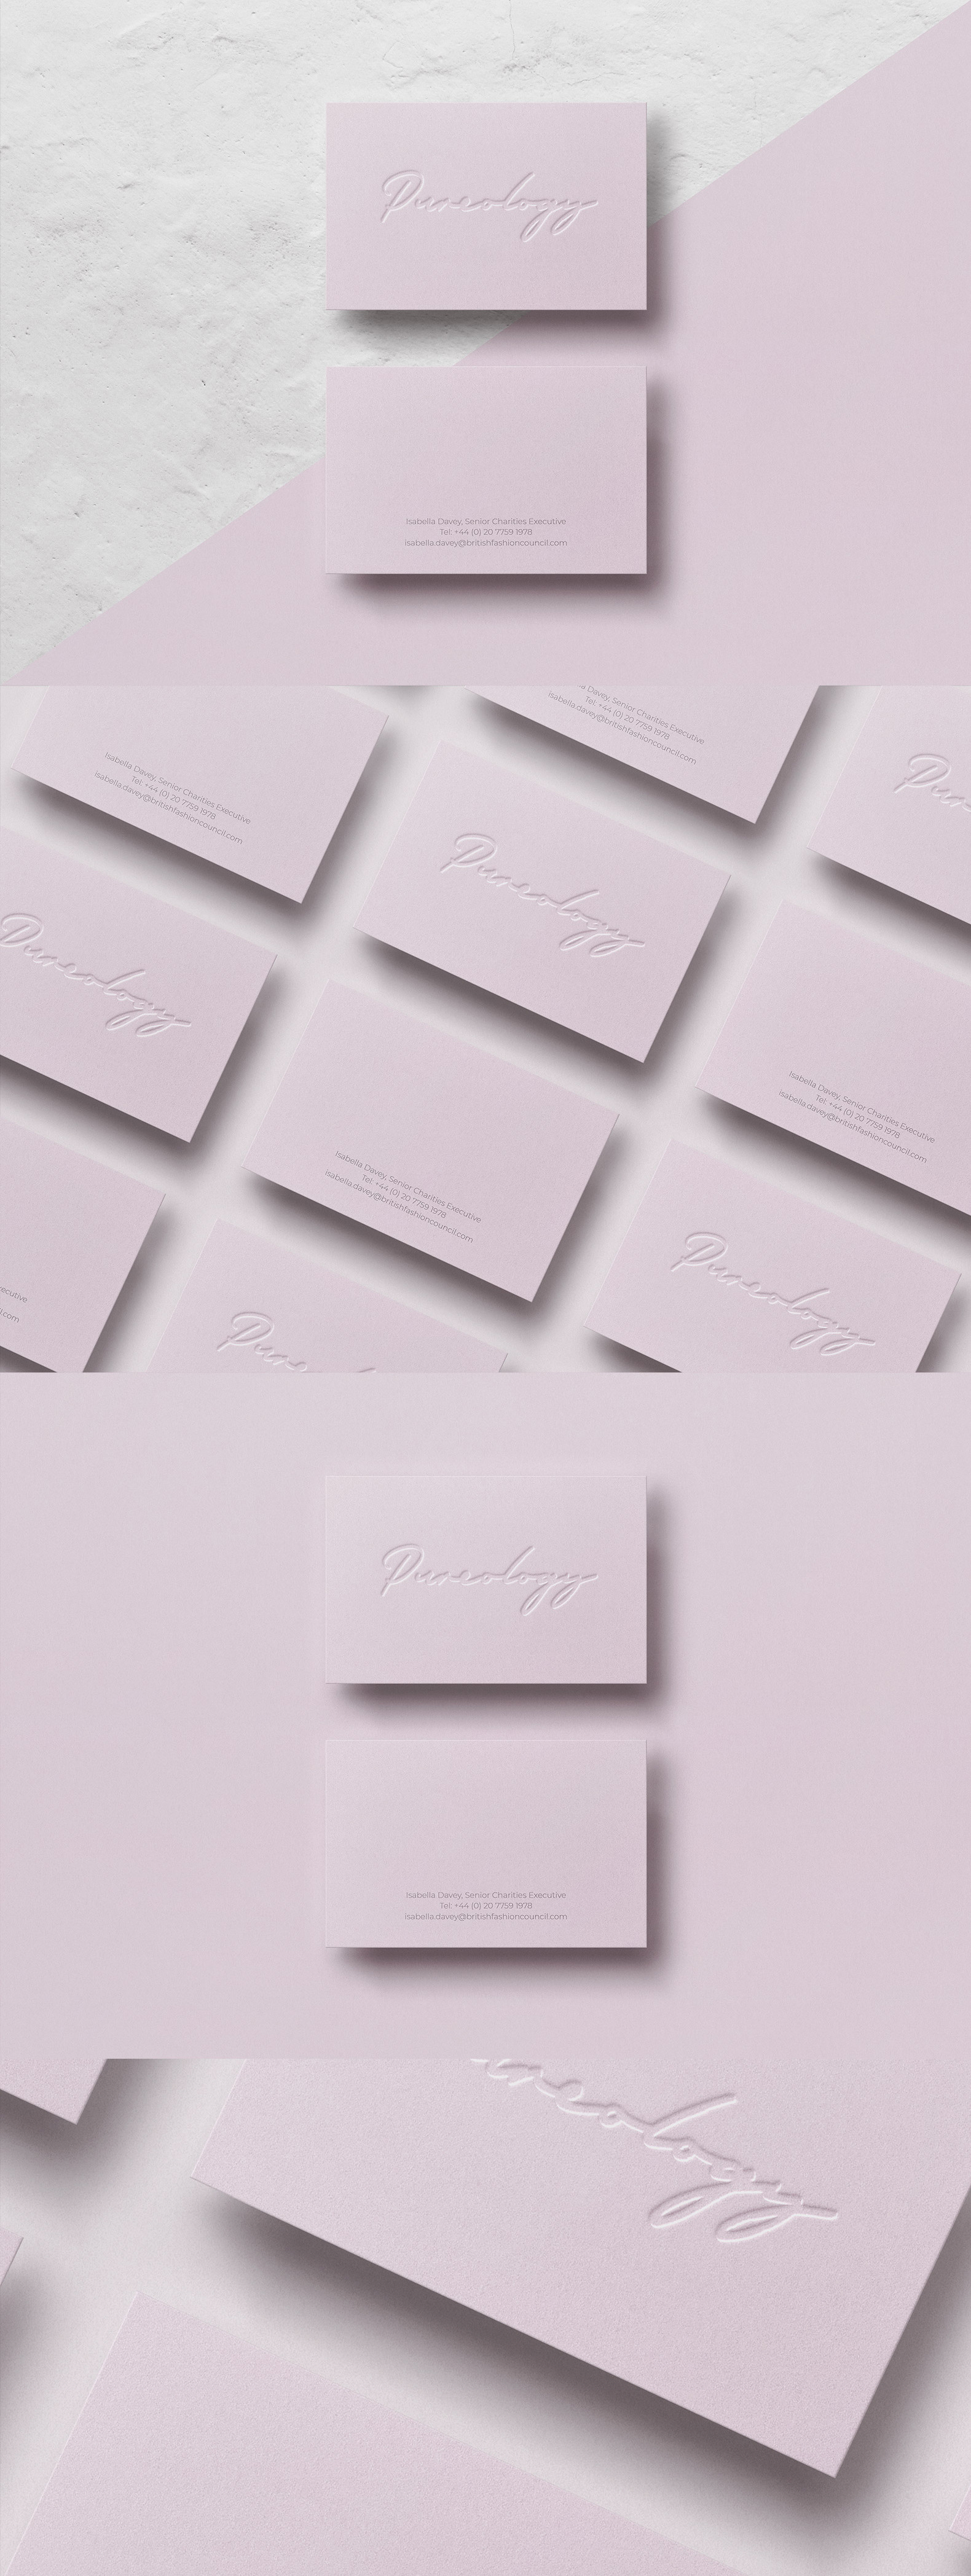 Business card Template & Mock-up #27